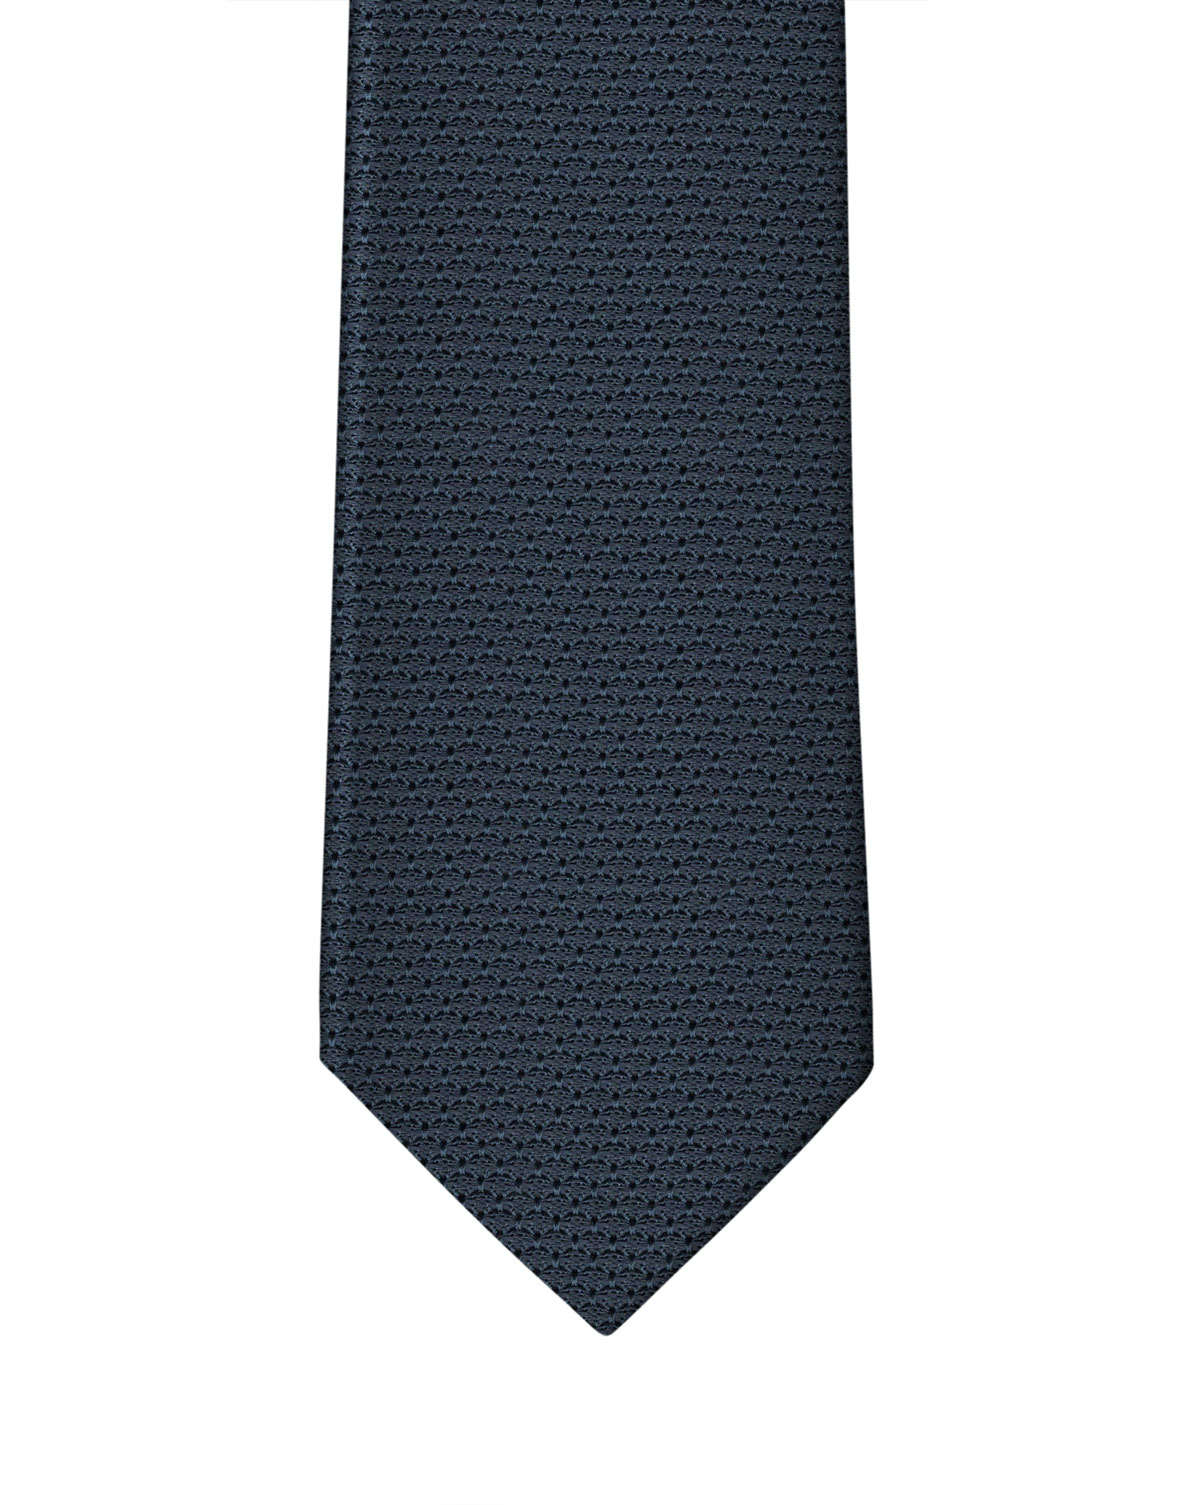 Navy Blue Grenadine Necktie